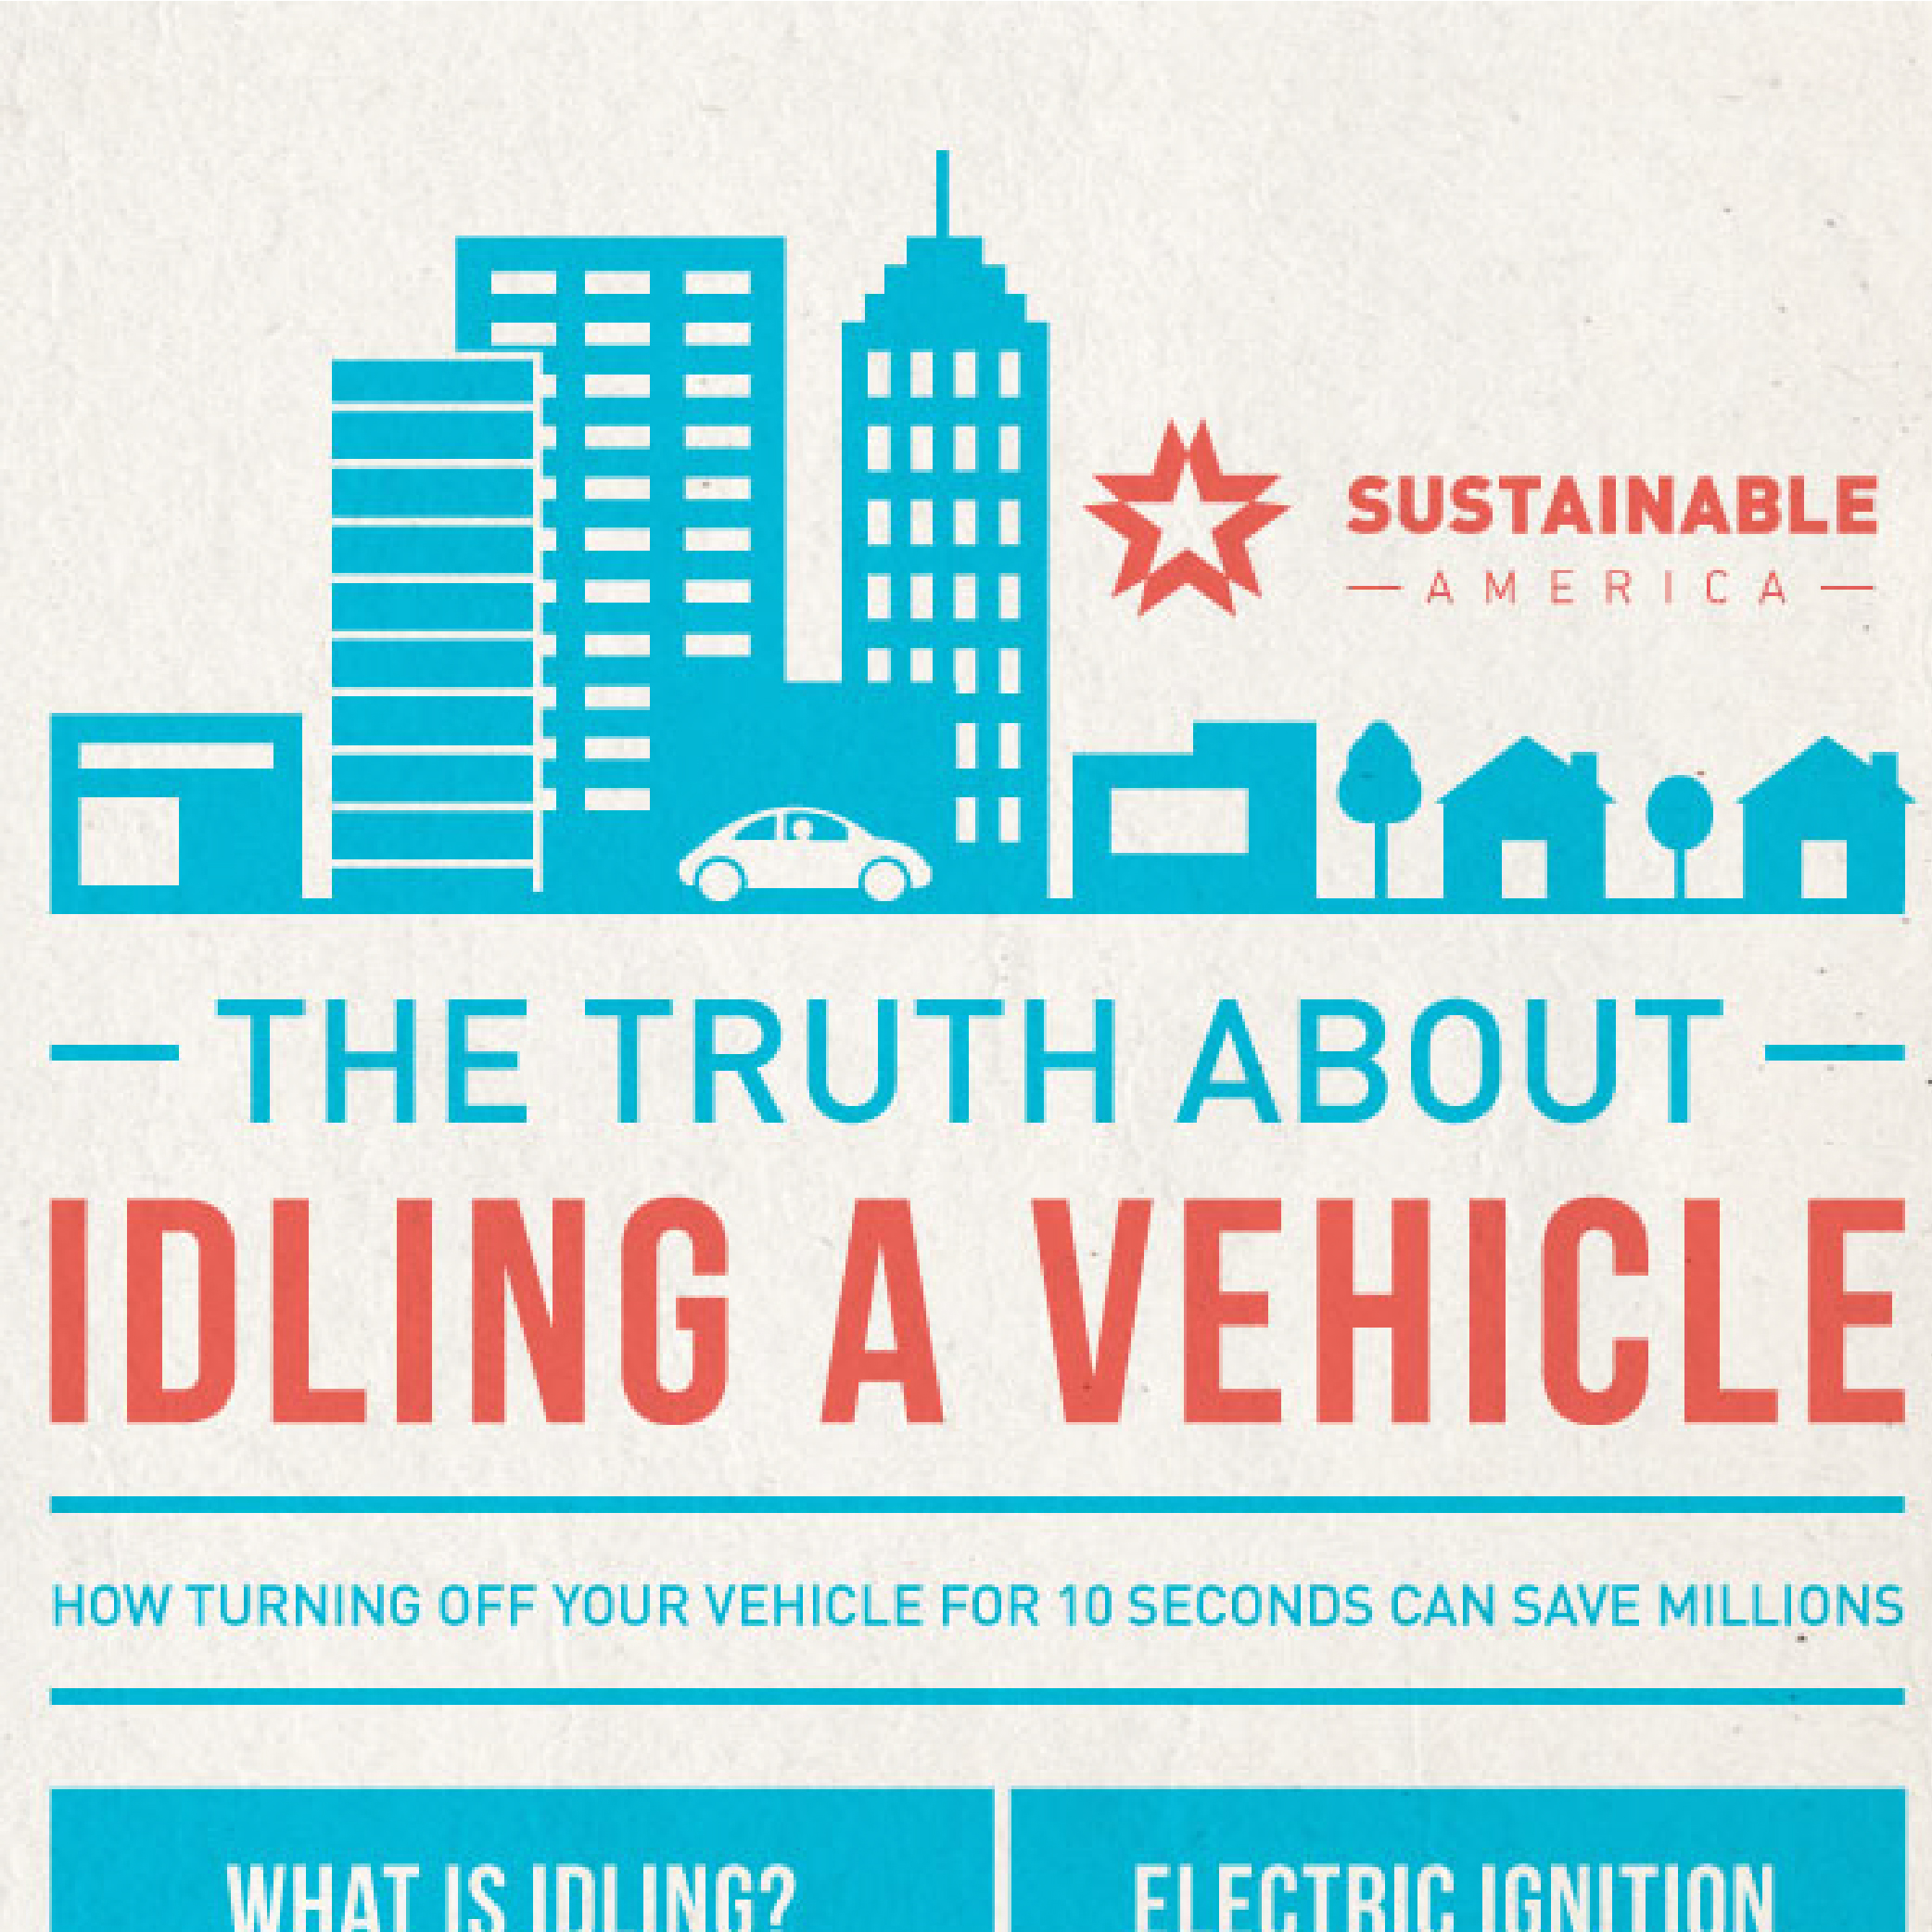 Infographic: The Truth About Idling a Vehicle